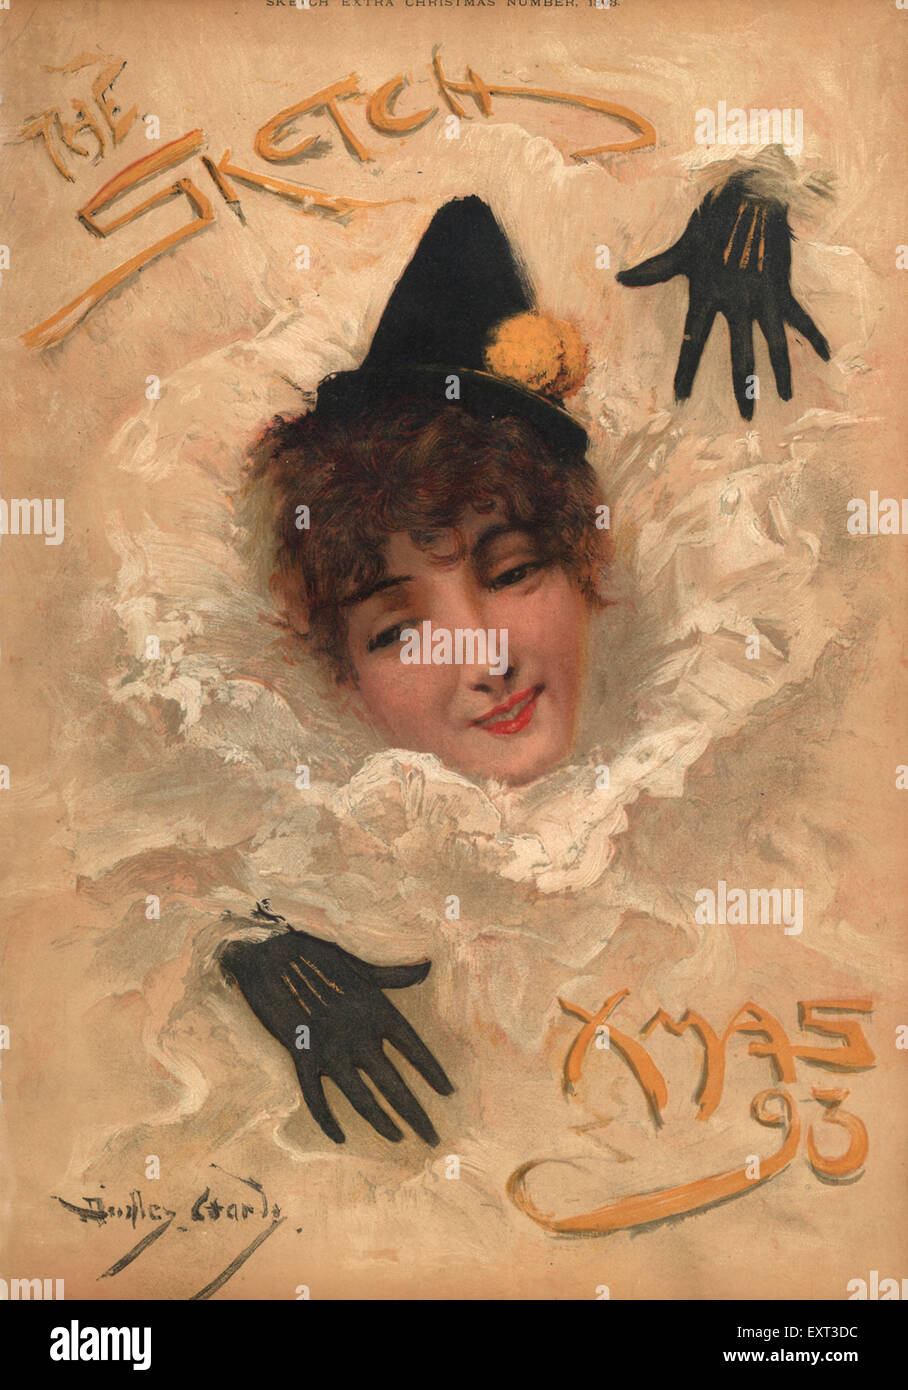 1890s UK The Sketch Magazine Cover Stock Photo